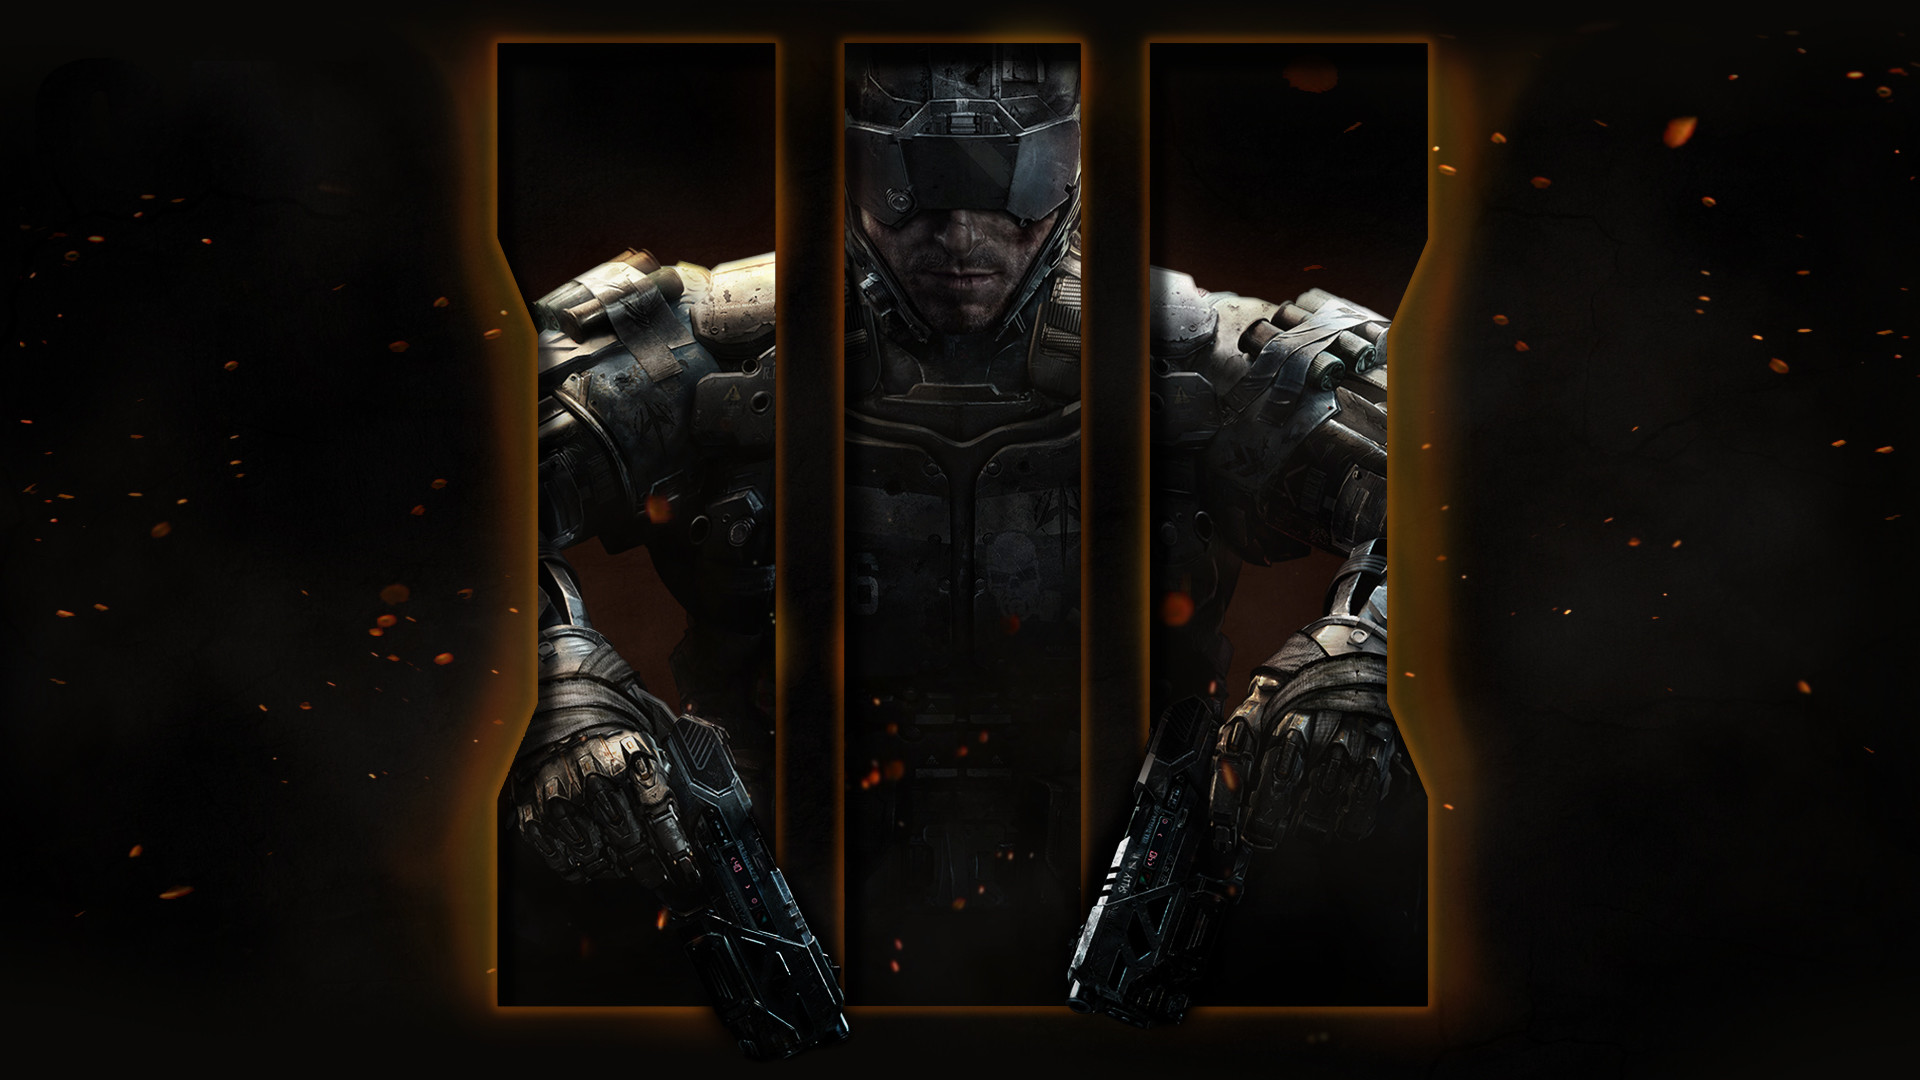 Call of Duty: Black Ops 3 Wallpaper 04 by Toby-Affenbude on DeviantArt